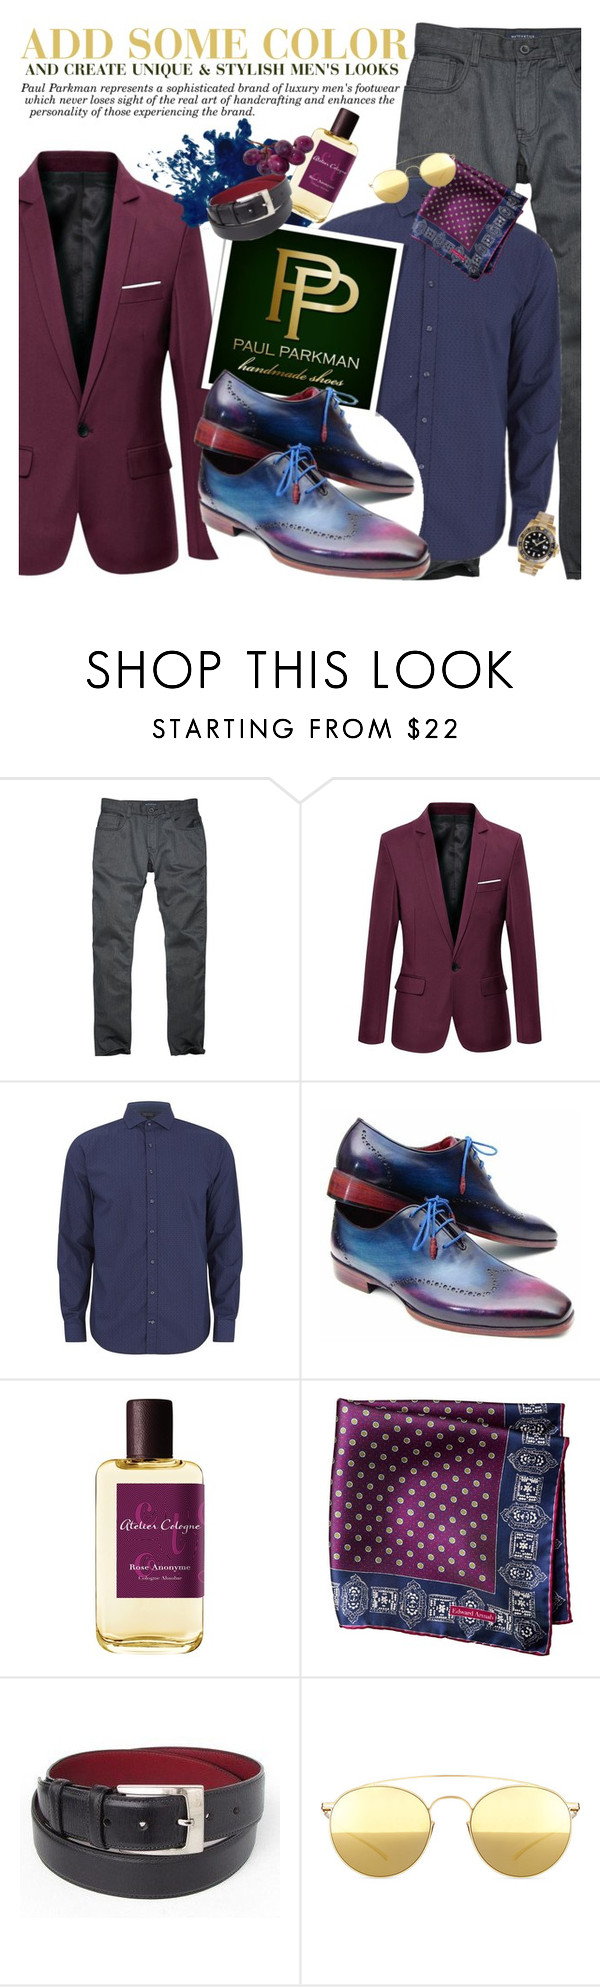 """""""PAUL PARKMAN - Add some color!"""" by anita-n ❤ liked on Polyvore featuring Tommy Hilfiger, Atelier, Mykita, Rolex, women's clothing, women's fashion, women, female, woman and misses"""